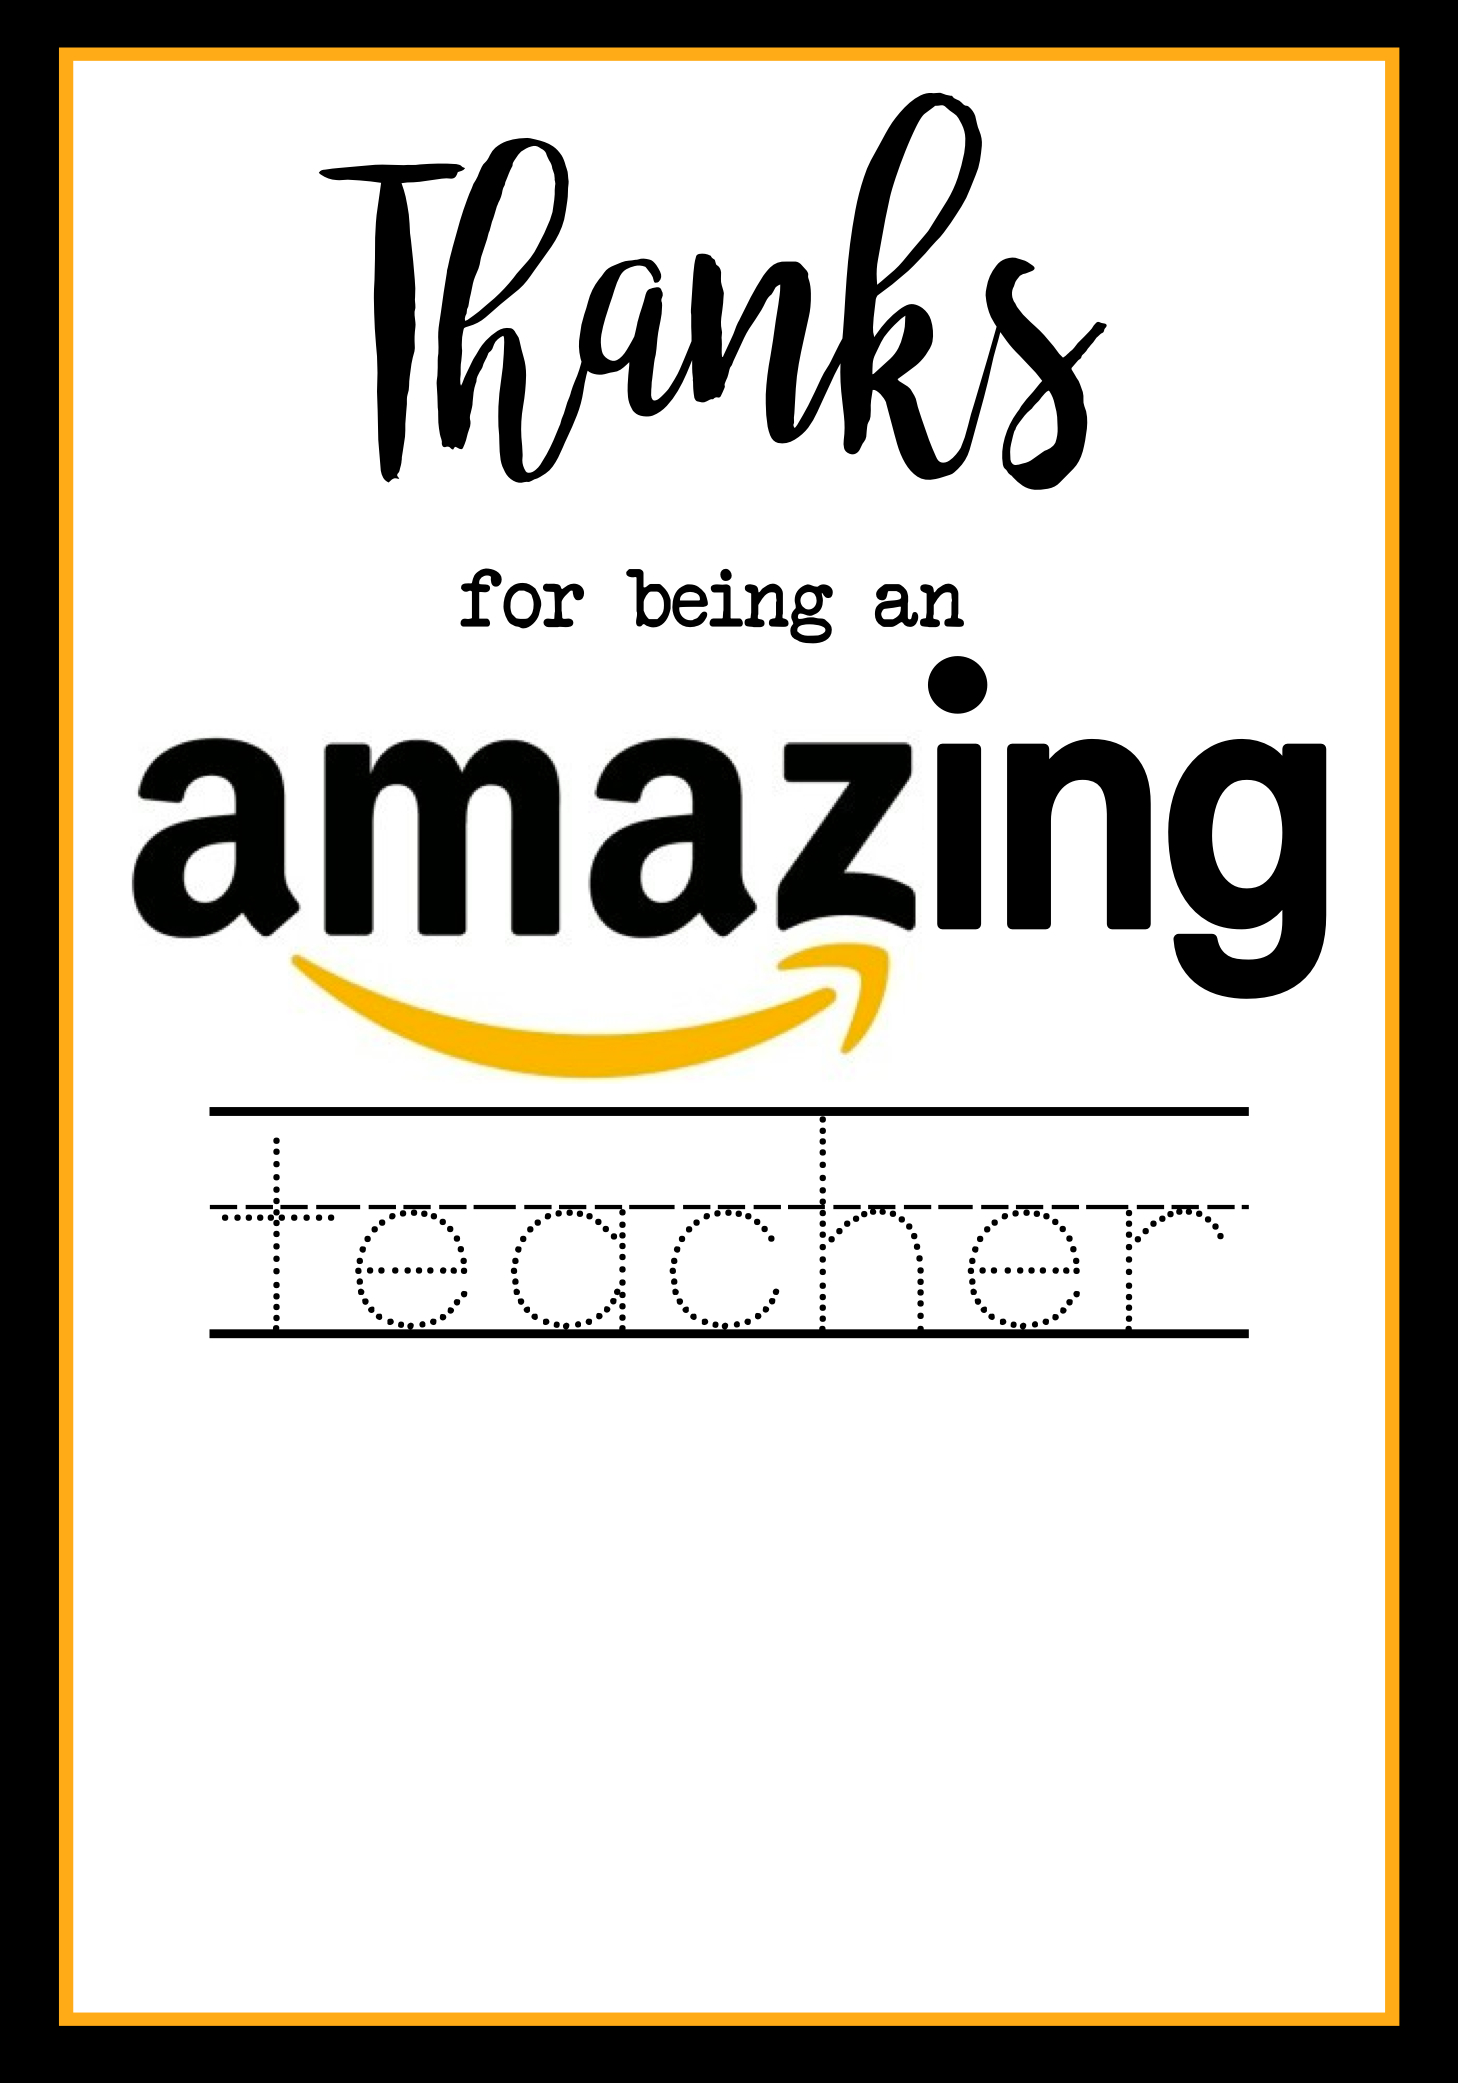 Teacher Appreciation Amazon Card - Paper Trail Design